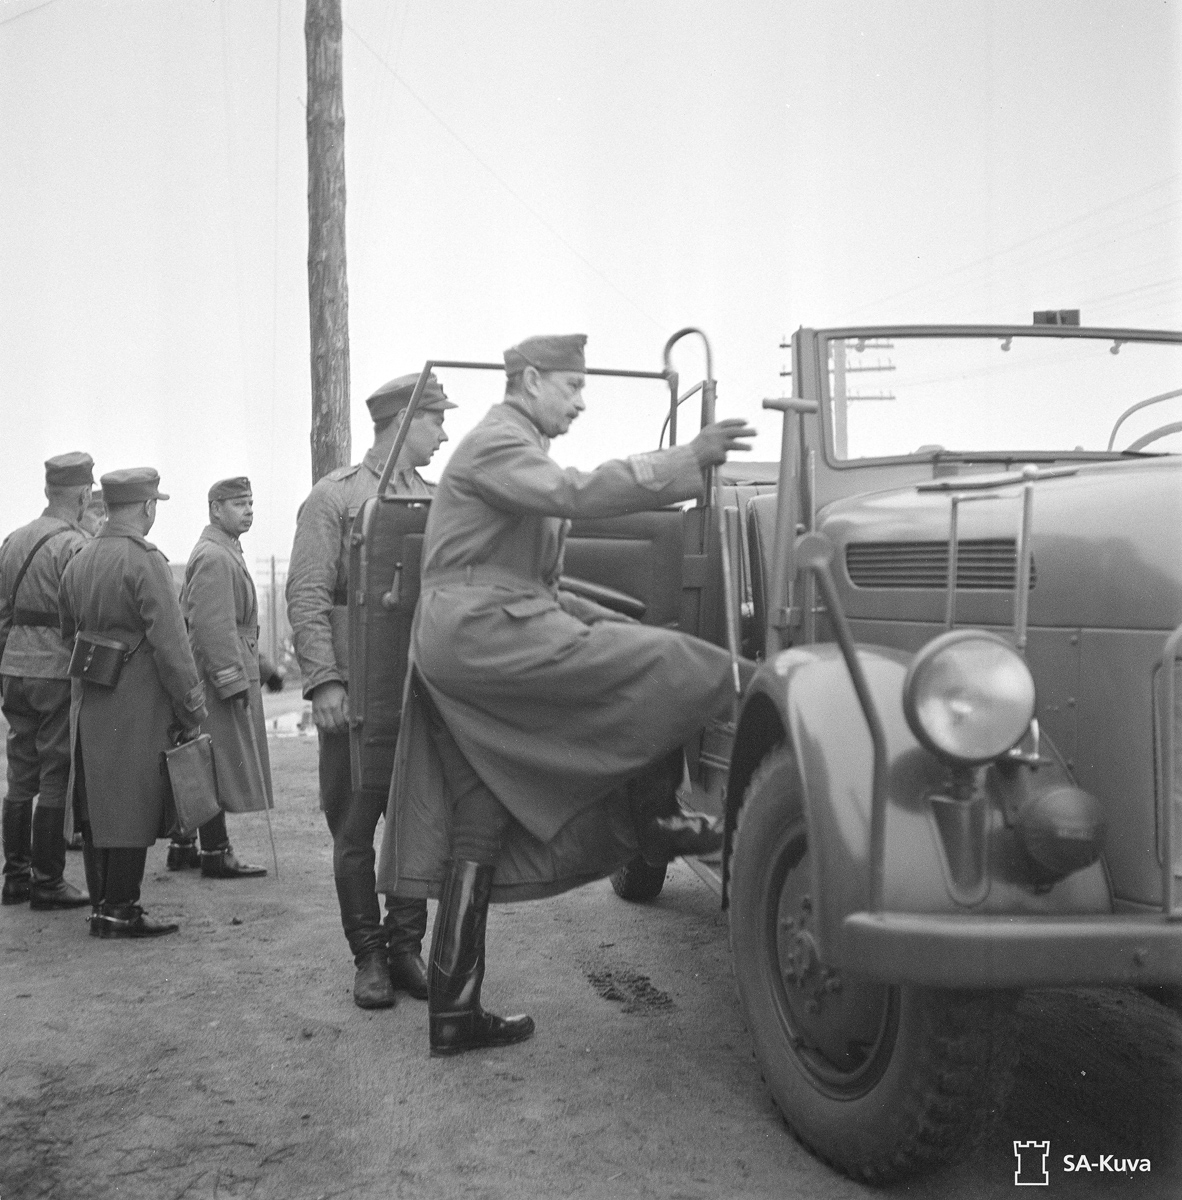 June 20, 1942. Mannerheim in Medvezhegorsk